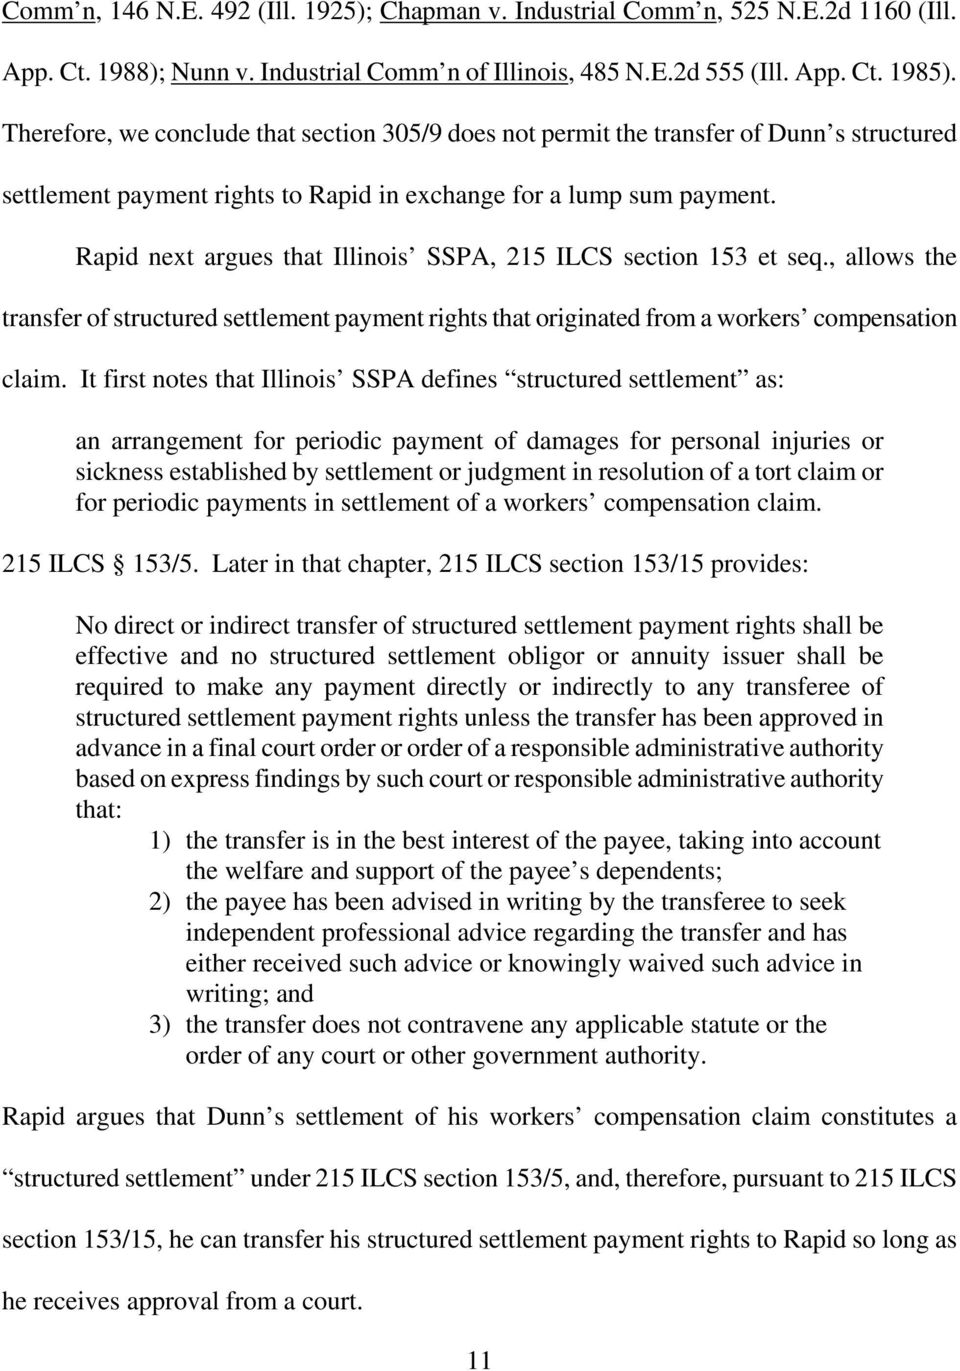 Rapid next argues that Illinois SSPA, 215 ILCS section 153 et seq., allows the transfer of structured settlement payment rights that originated from a workers compensation claim.